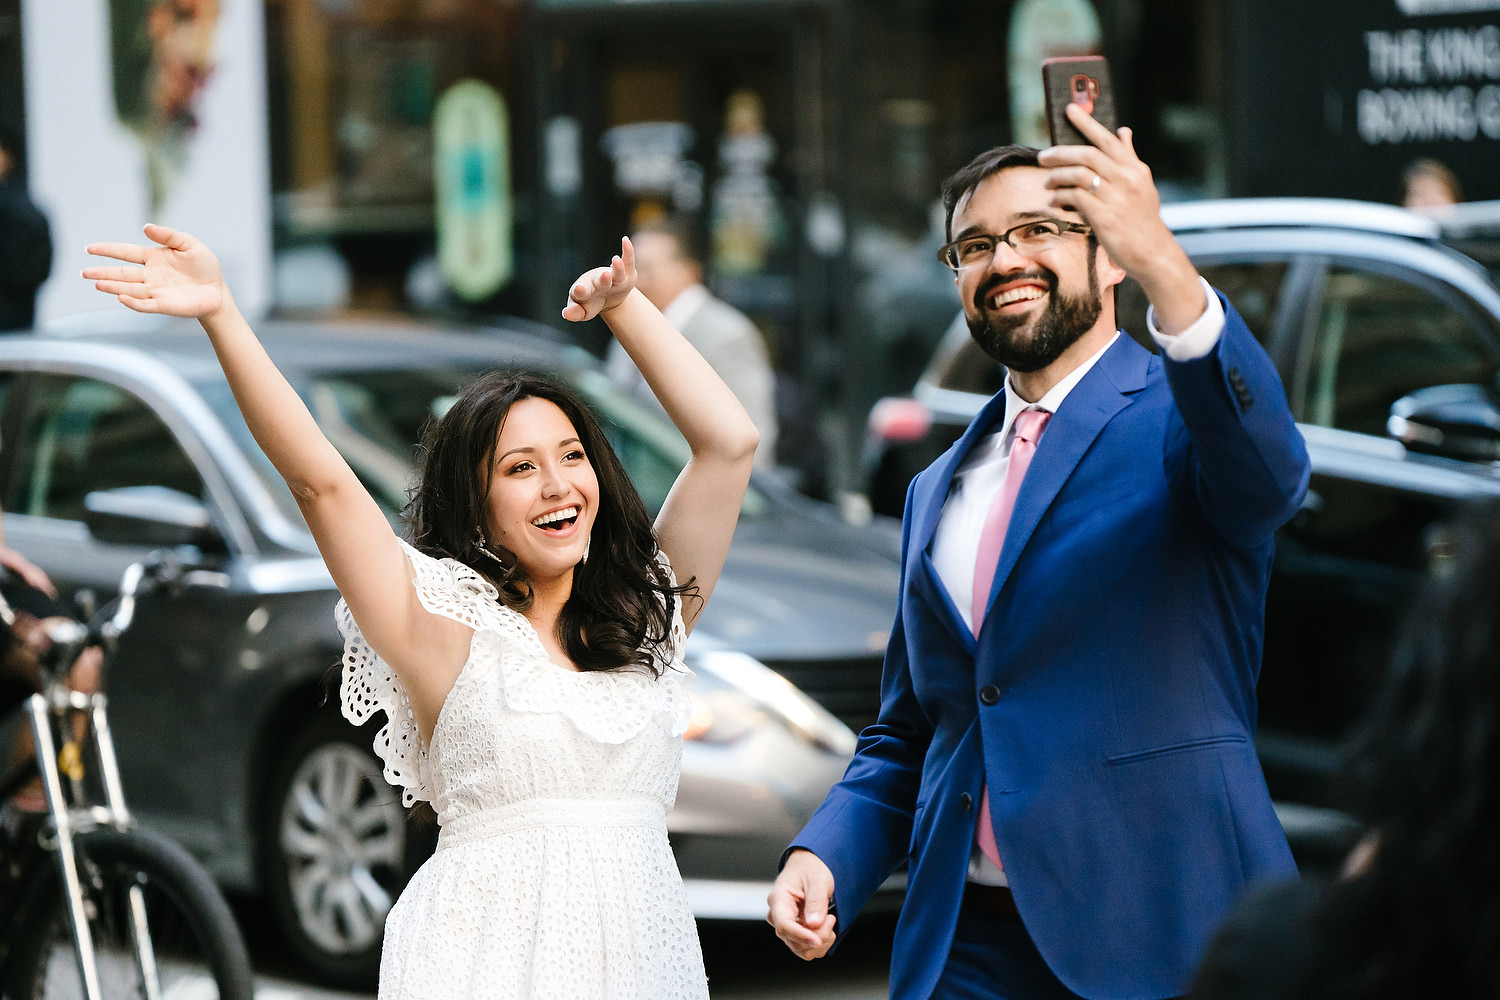 Boston Old South Meeting House wedding photo session 31